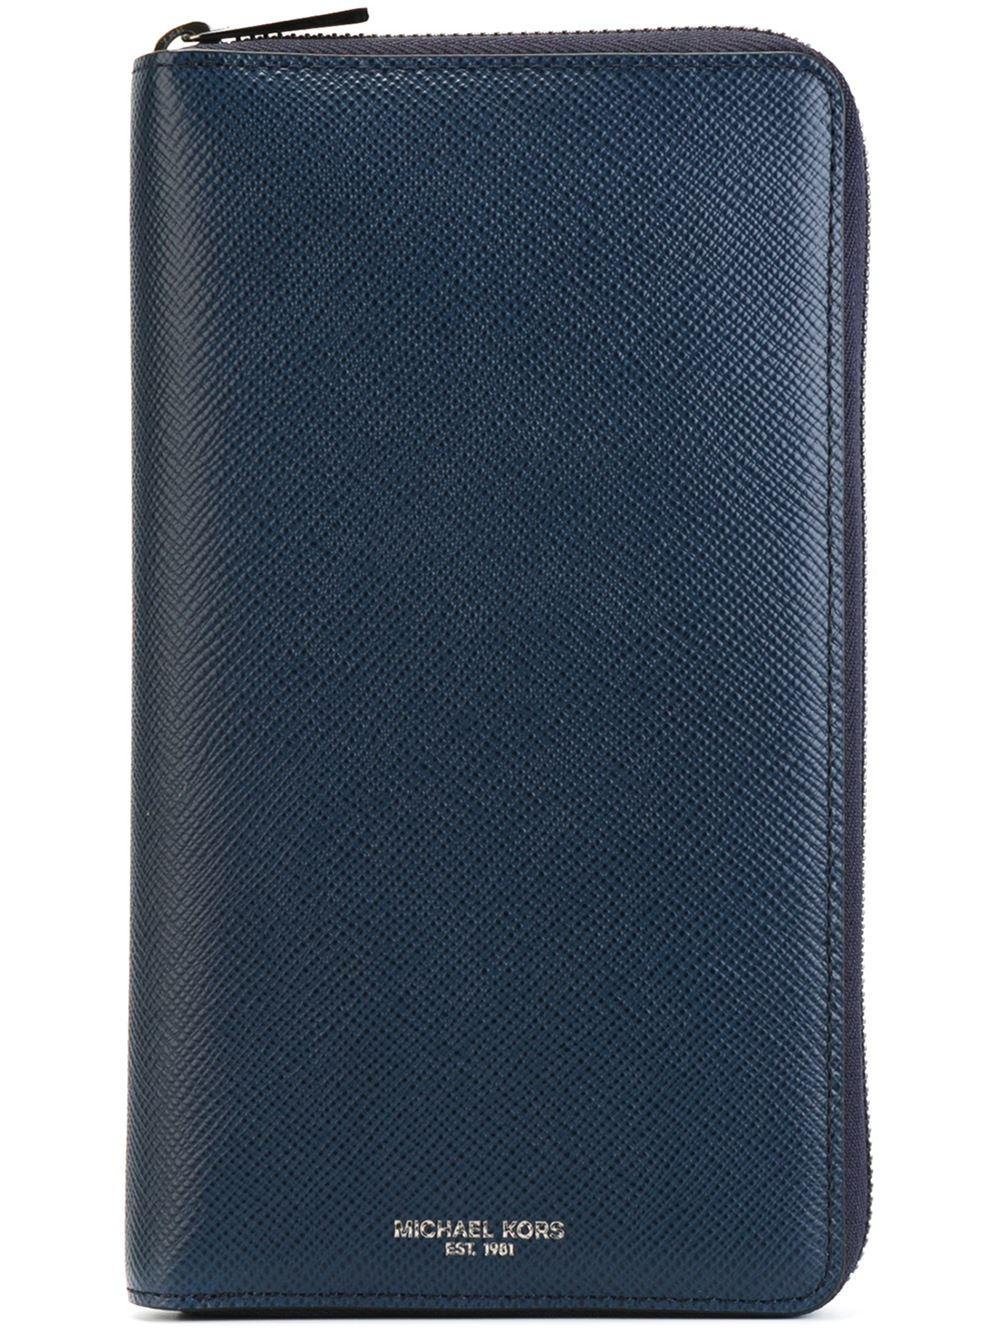 42c8b55e34f6 Michael Kors Wallet Mens Uk | Stanford Center for Opportunity Policy ...